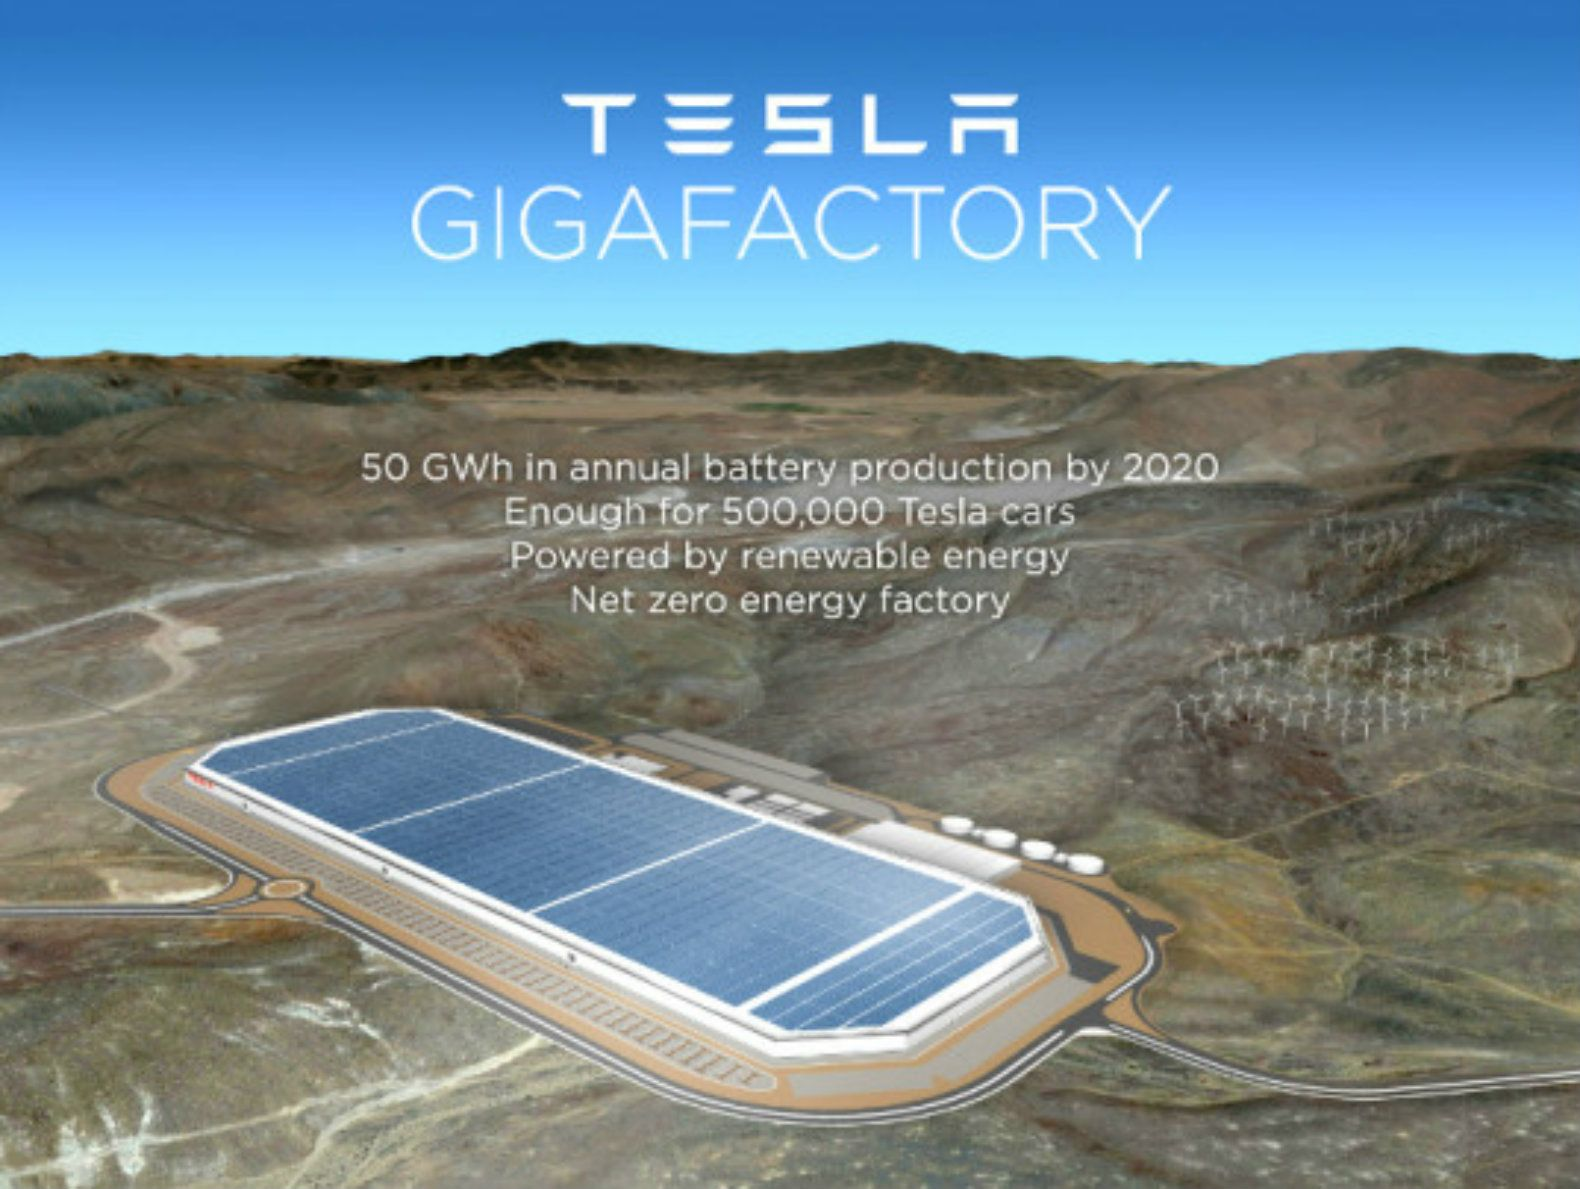 Tesla To Launch Powerwall 2 0 Home Battery This Summer Tesla Battery Tesla Powerwall Tesla Factory